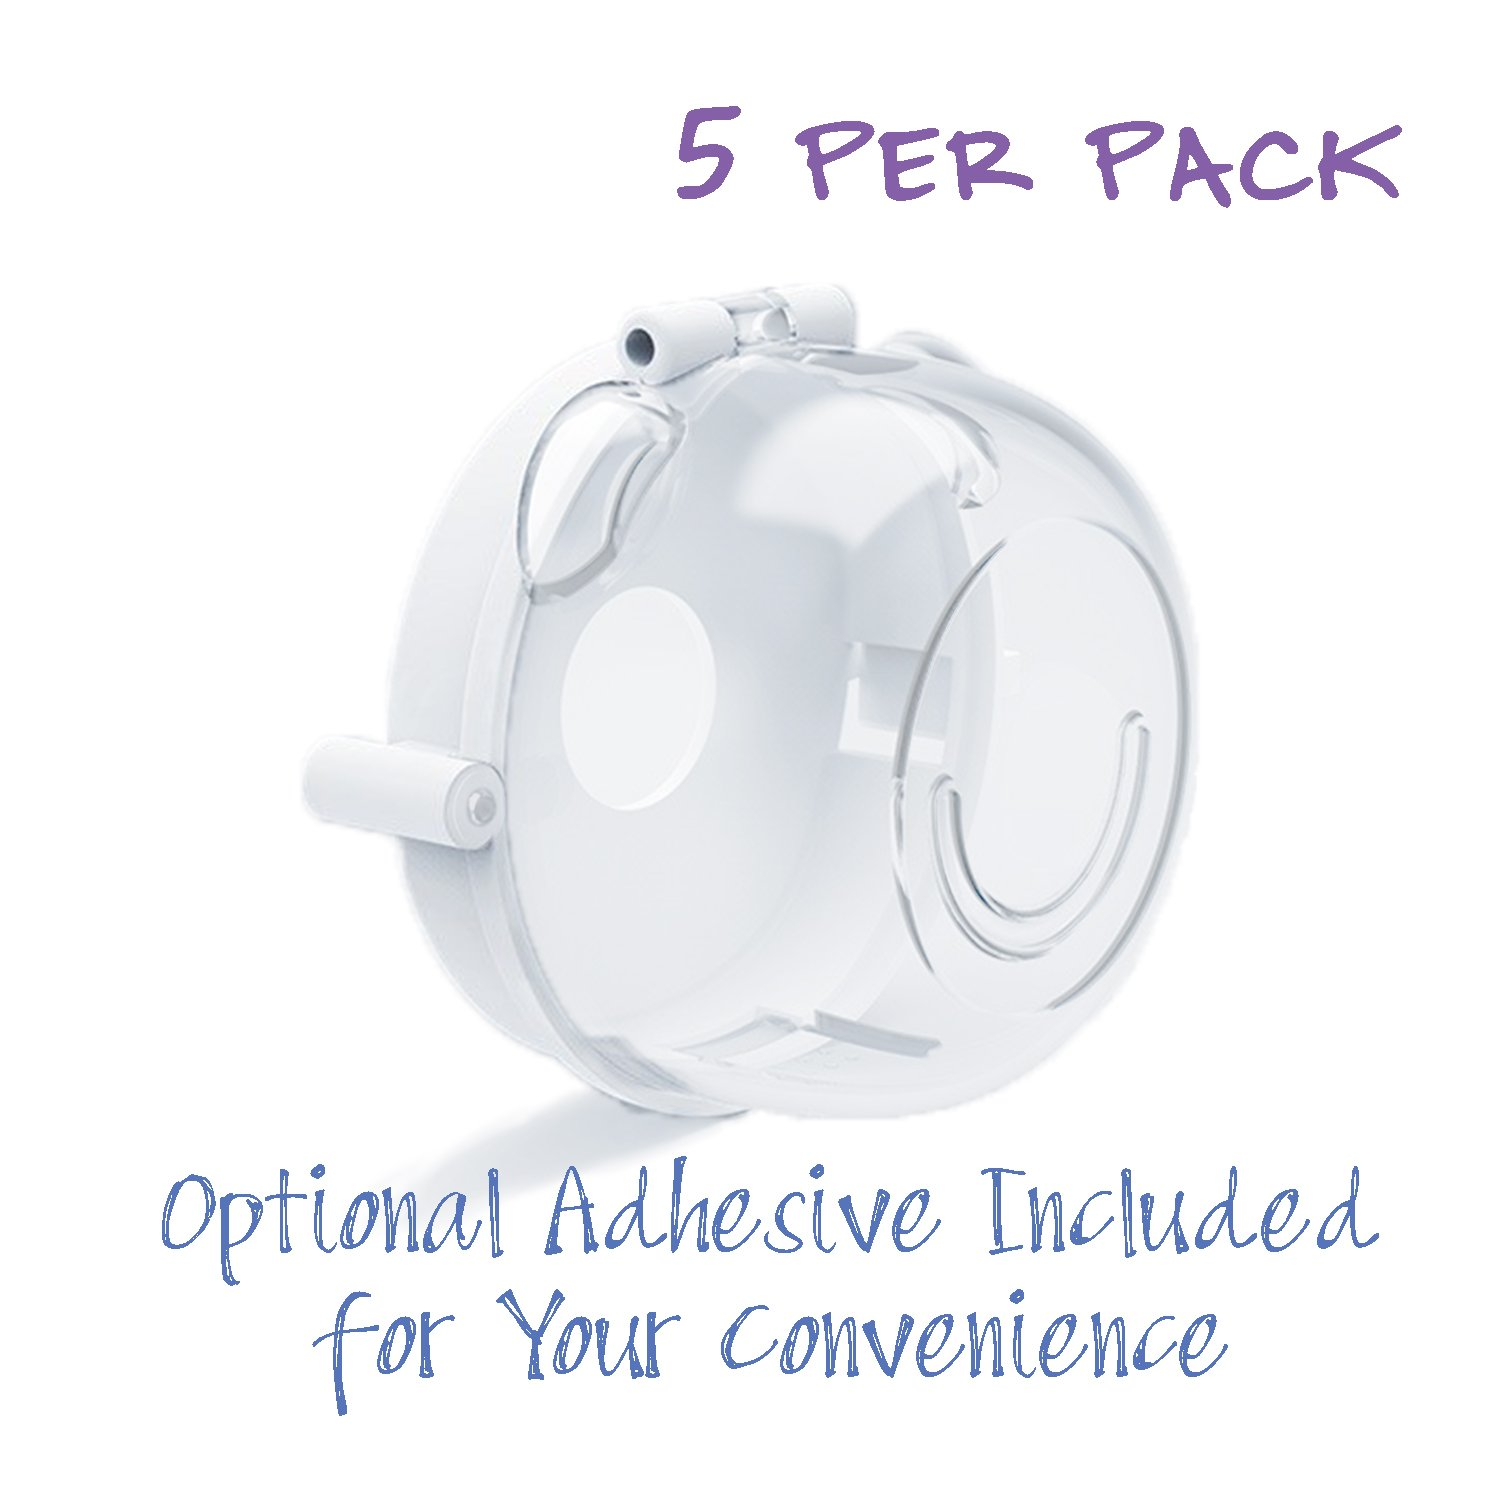 Child Safety Oven & Gas Stove Knob Covers [5 Pack/Clear] | Adhesive Tape for Stabilizing | Measure to Fit | Avoid Kitchen Accidents | Pet & Baby Proof Lock/Caps for Gas Range/Burner Knob | Easy Set-up